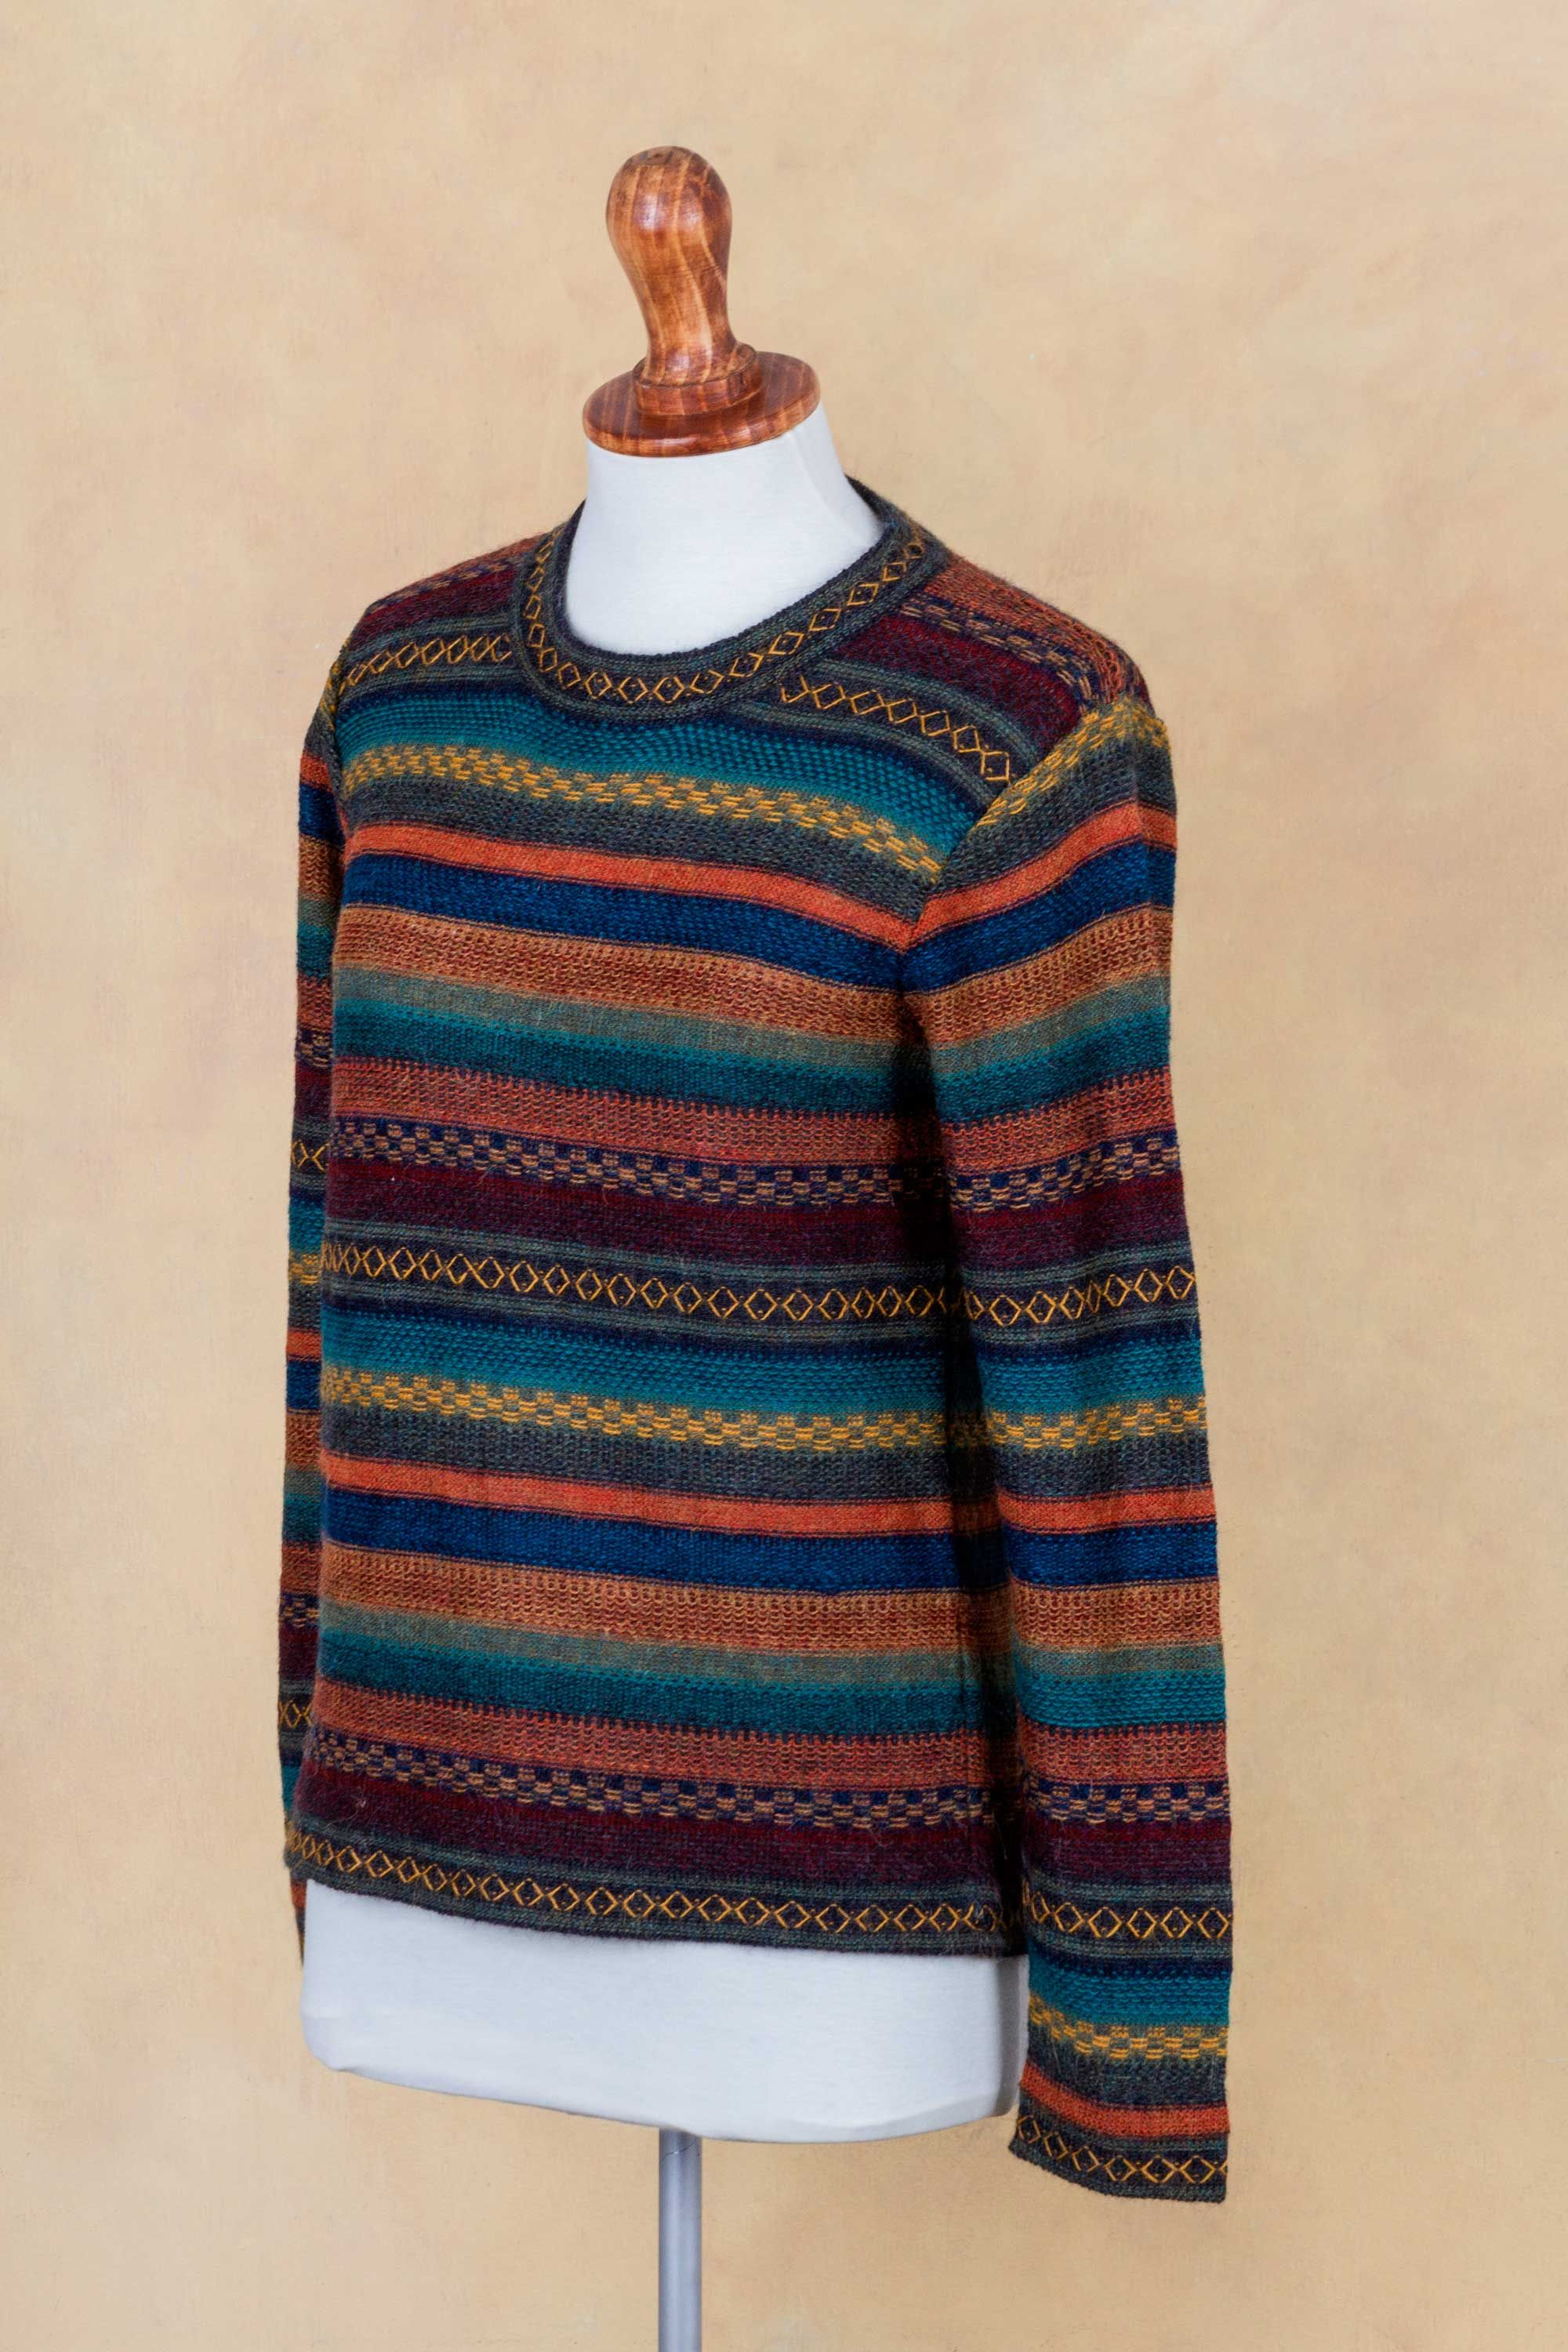 100 Alpaca Pullover Andean Backgrounds Sponsored Alpaca Sponsored Pullover Backgrounds Andean Pullover Work Casual Piece Of Clothing